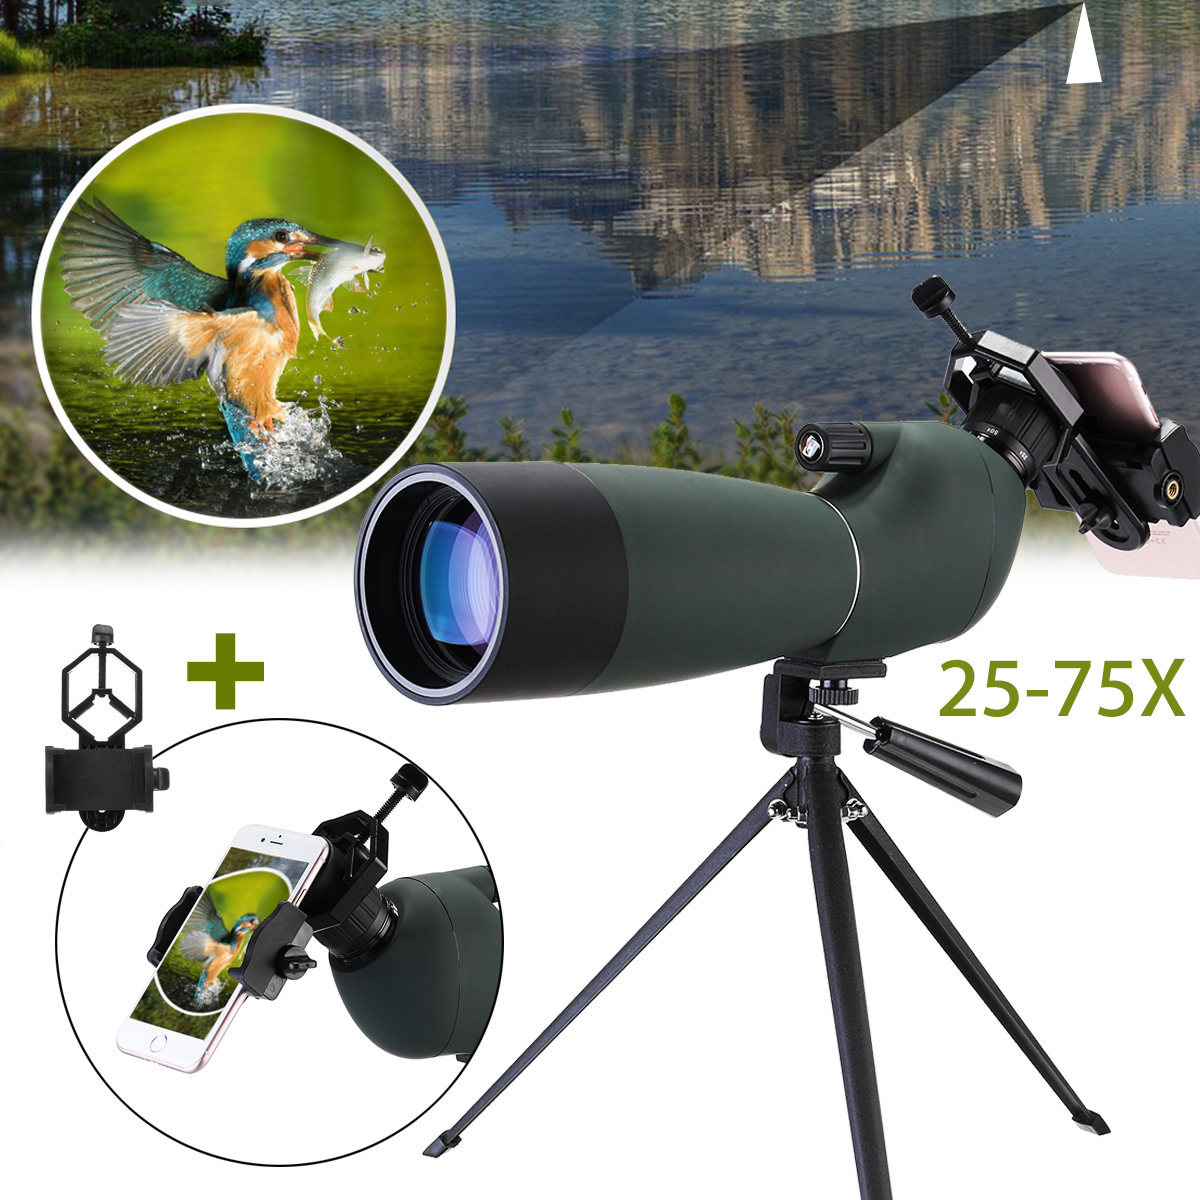 Spotting Scope BAK4 25-75x70 Zoom Monocular Telescope Waterproof Binoculars with Tripod Phone Holder for Birdwatch Hunting цена